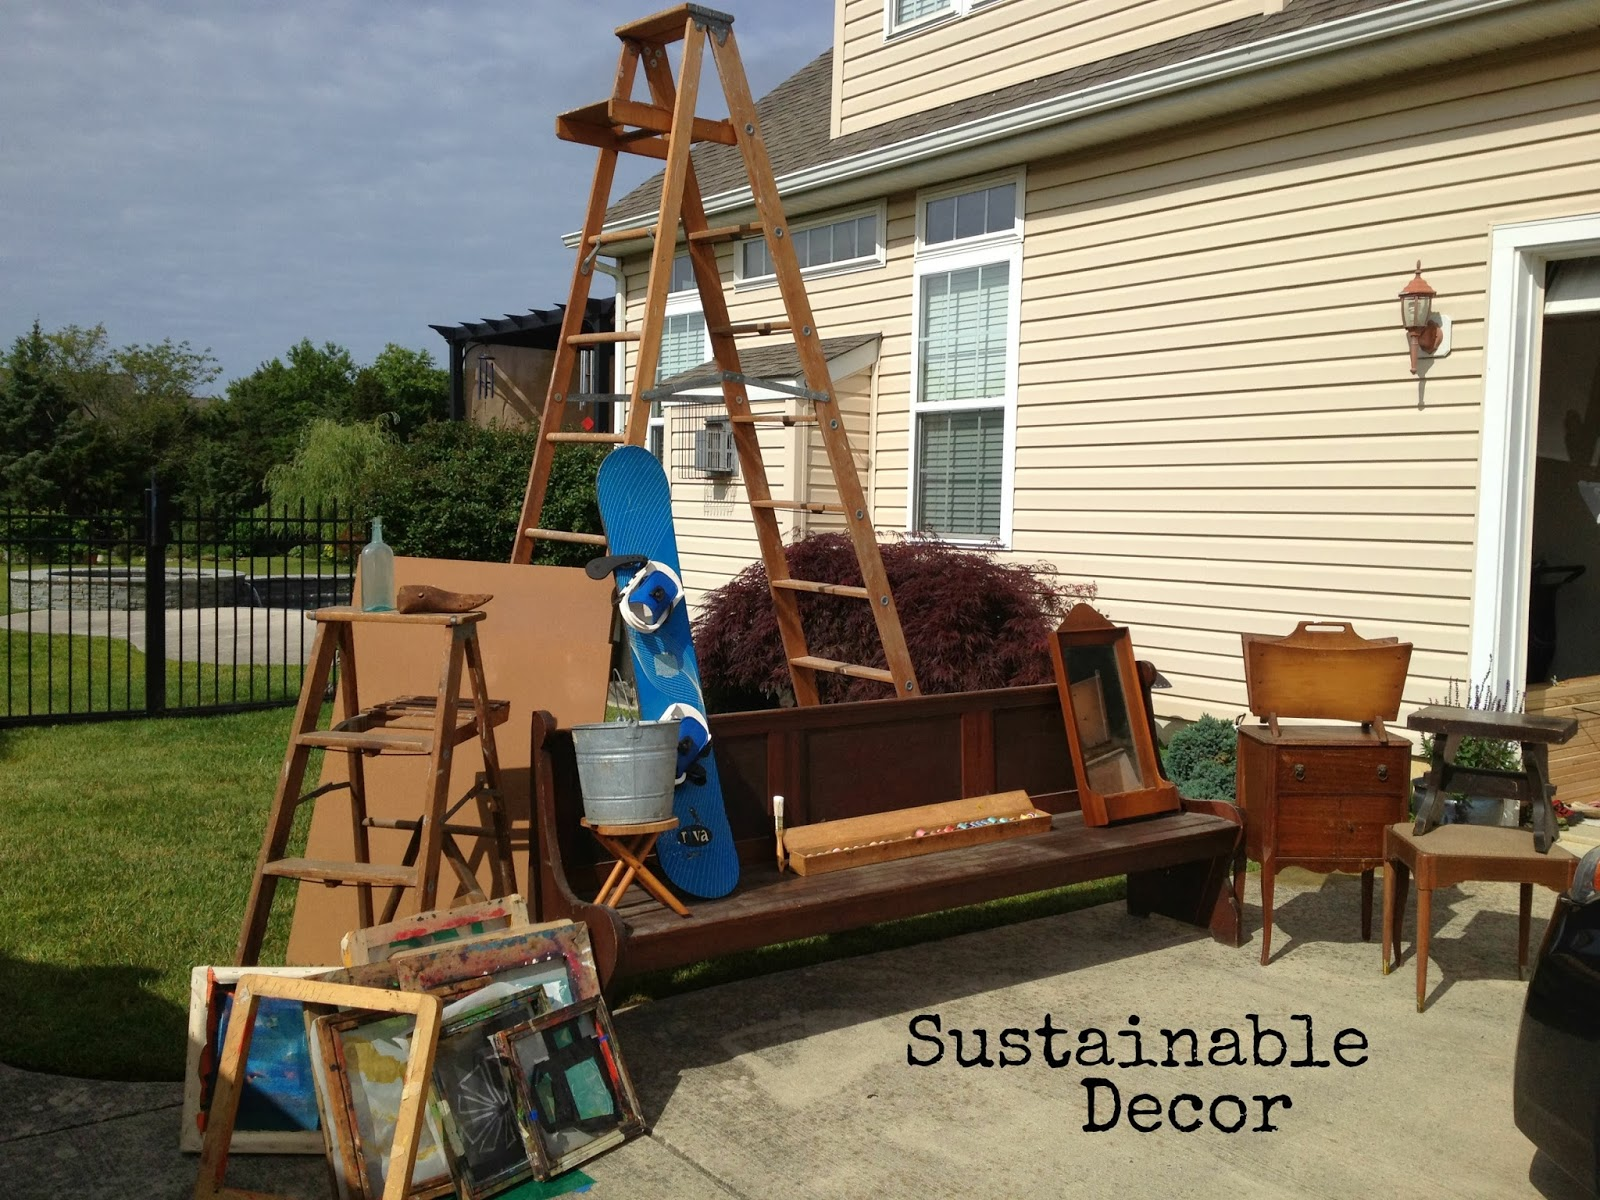 Sustainable Decor Wordless Wednesday Yard Sale Finds And